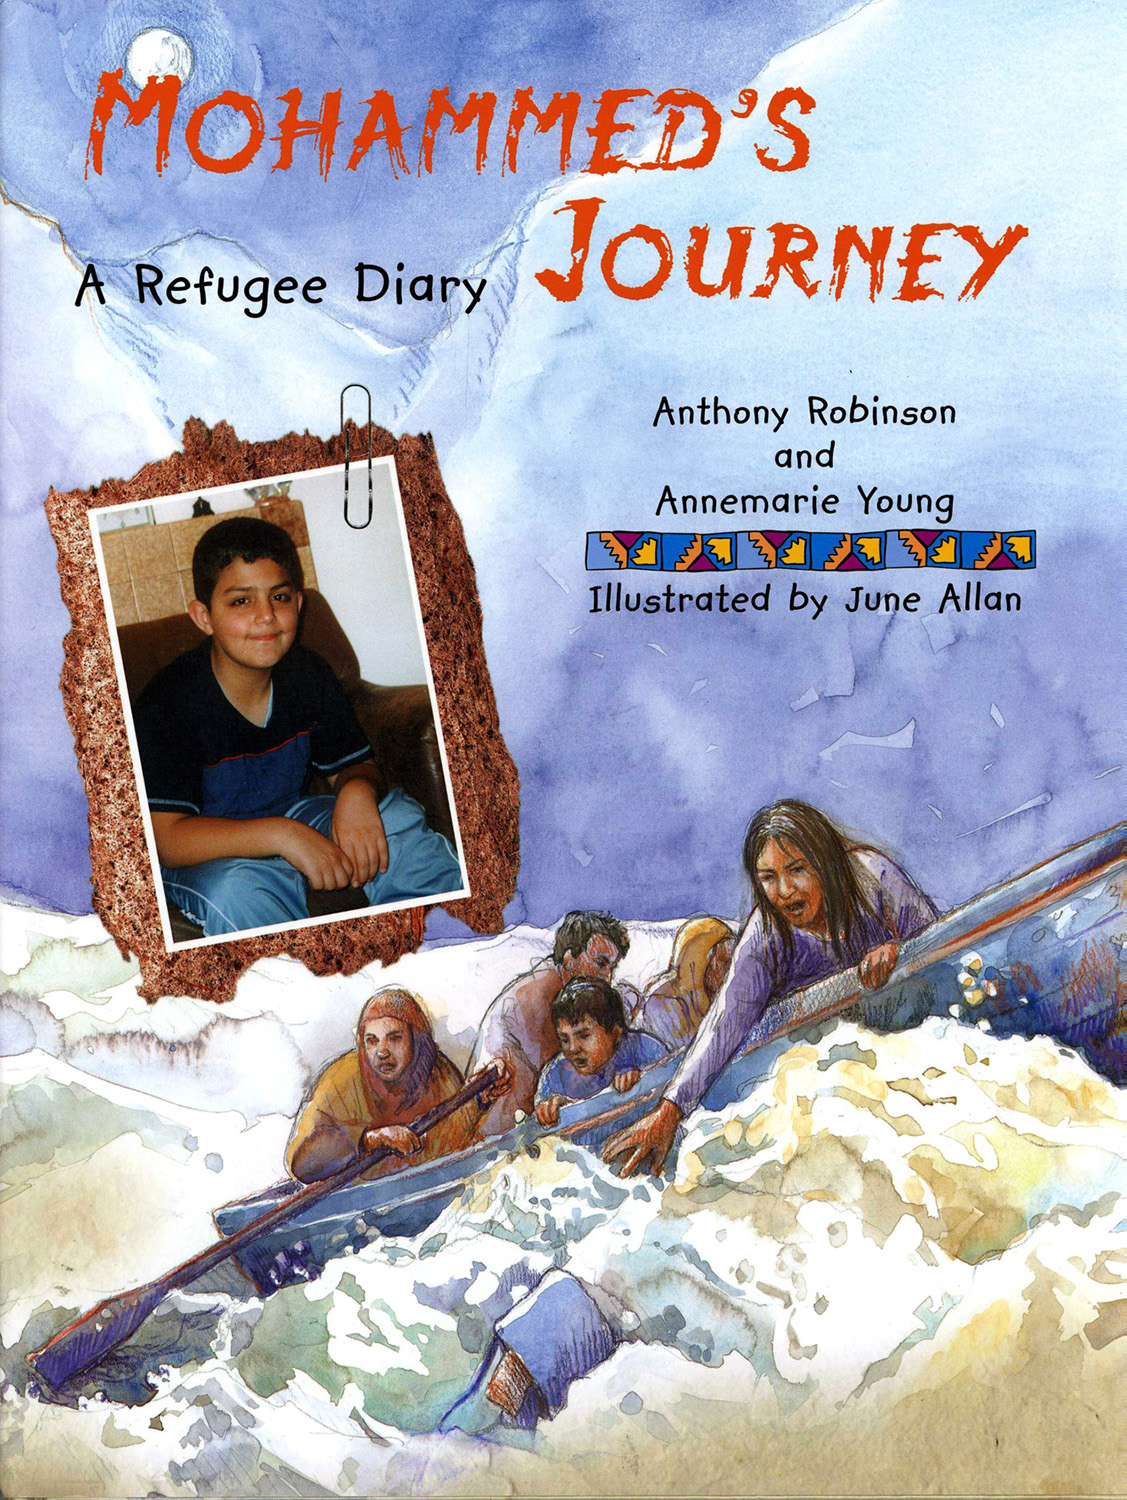 Front cover for 'Mohammed's Journey' by Anthony Robinson published by Frances Lincoln Ltd.